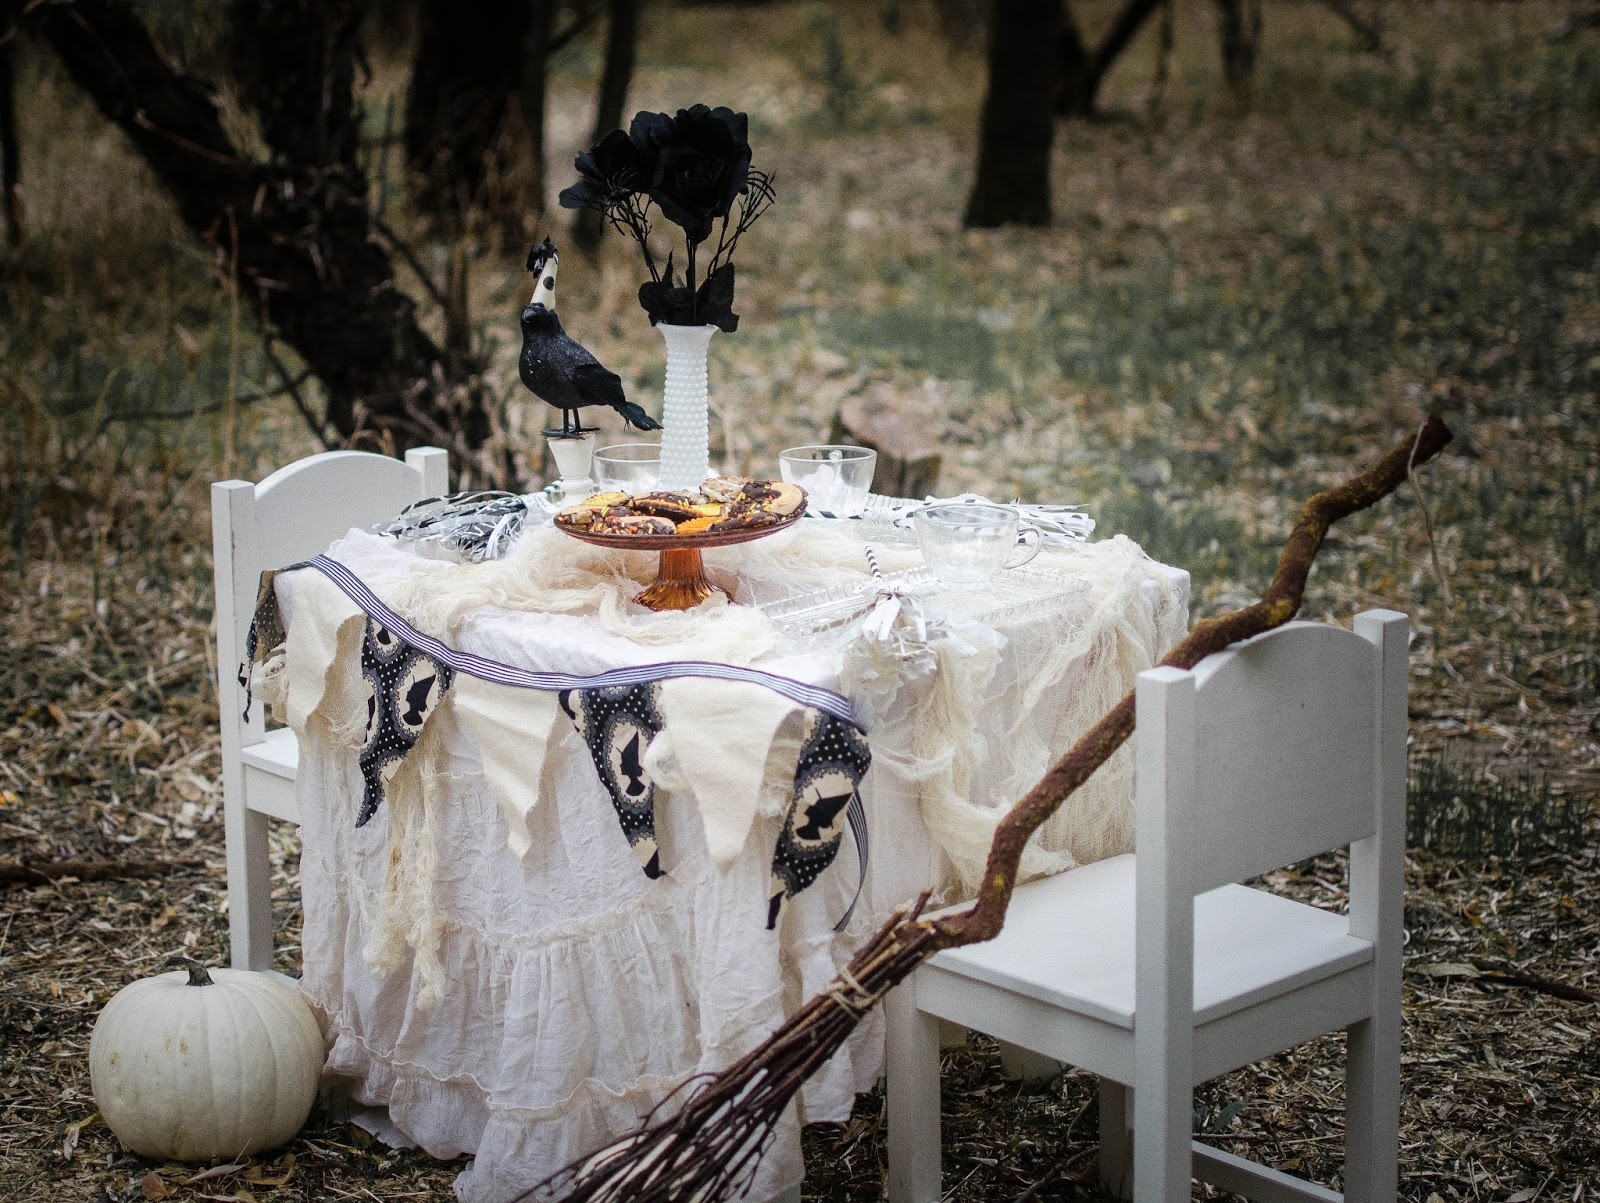 What necessary Witches tea party